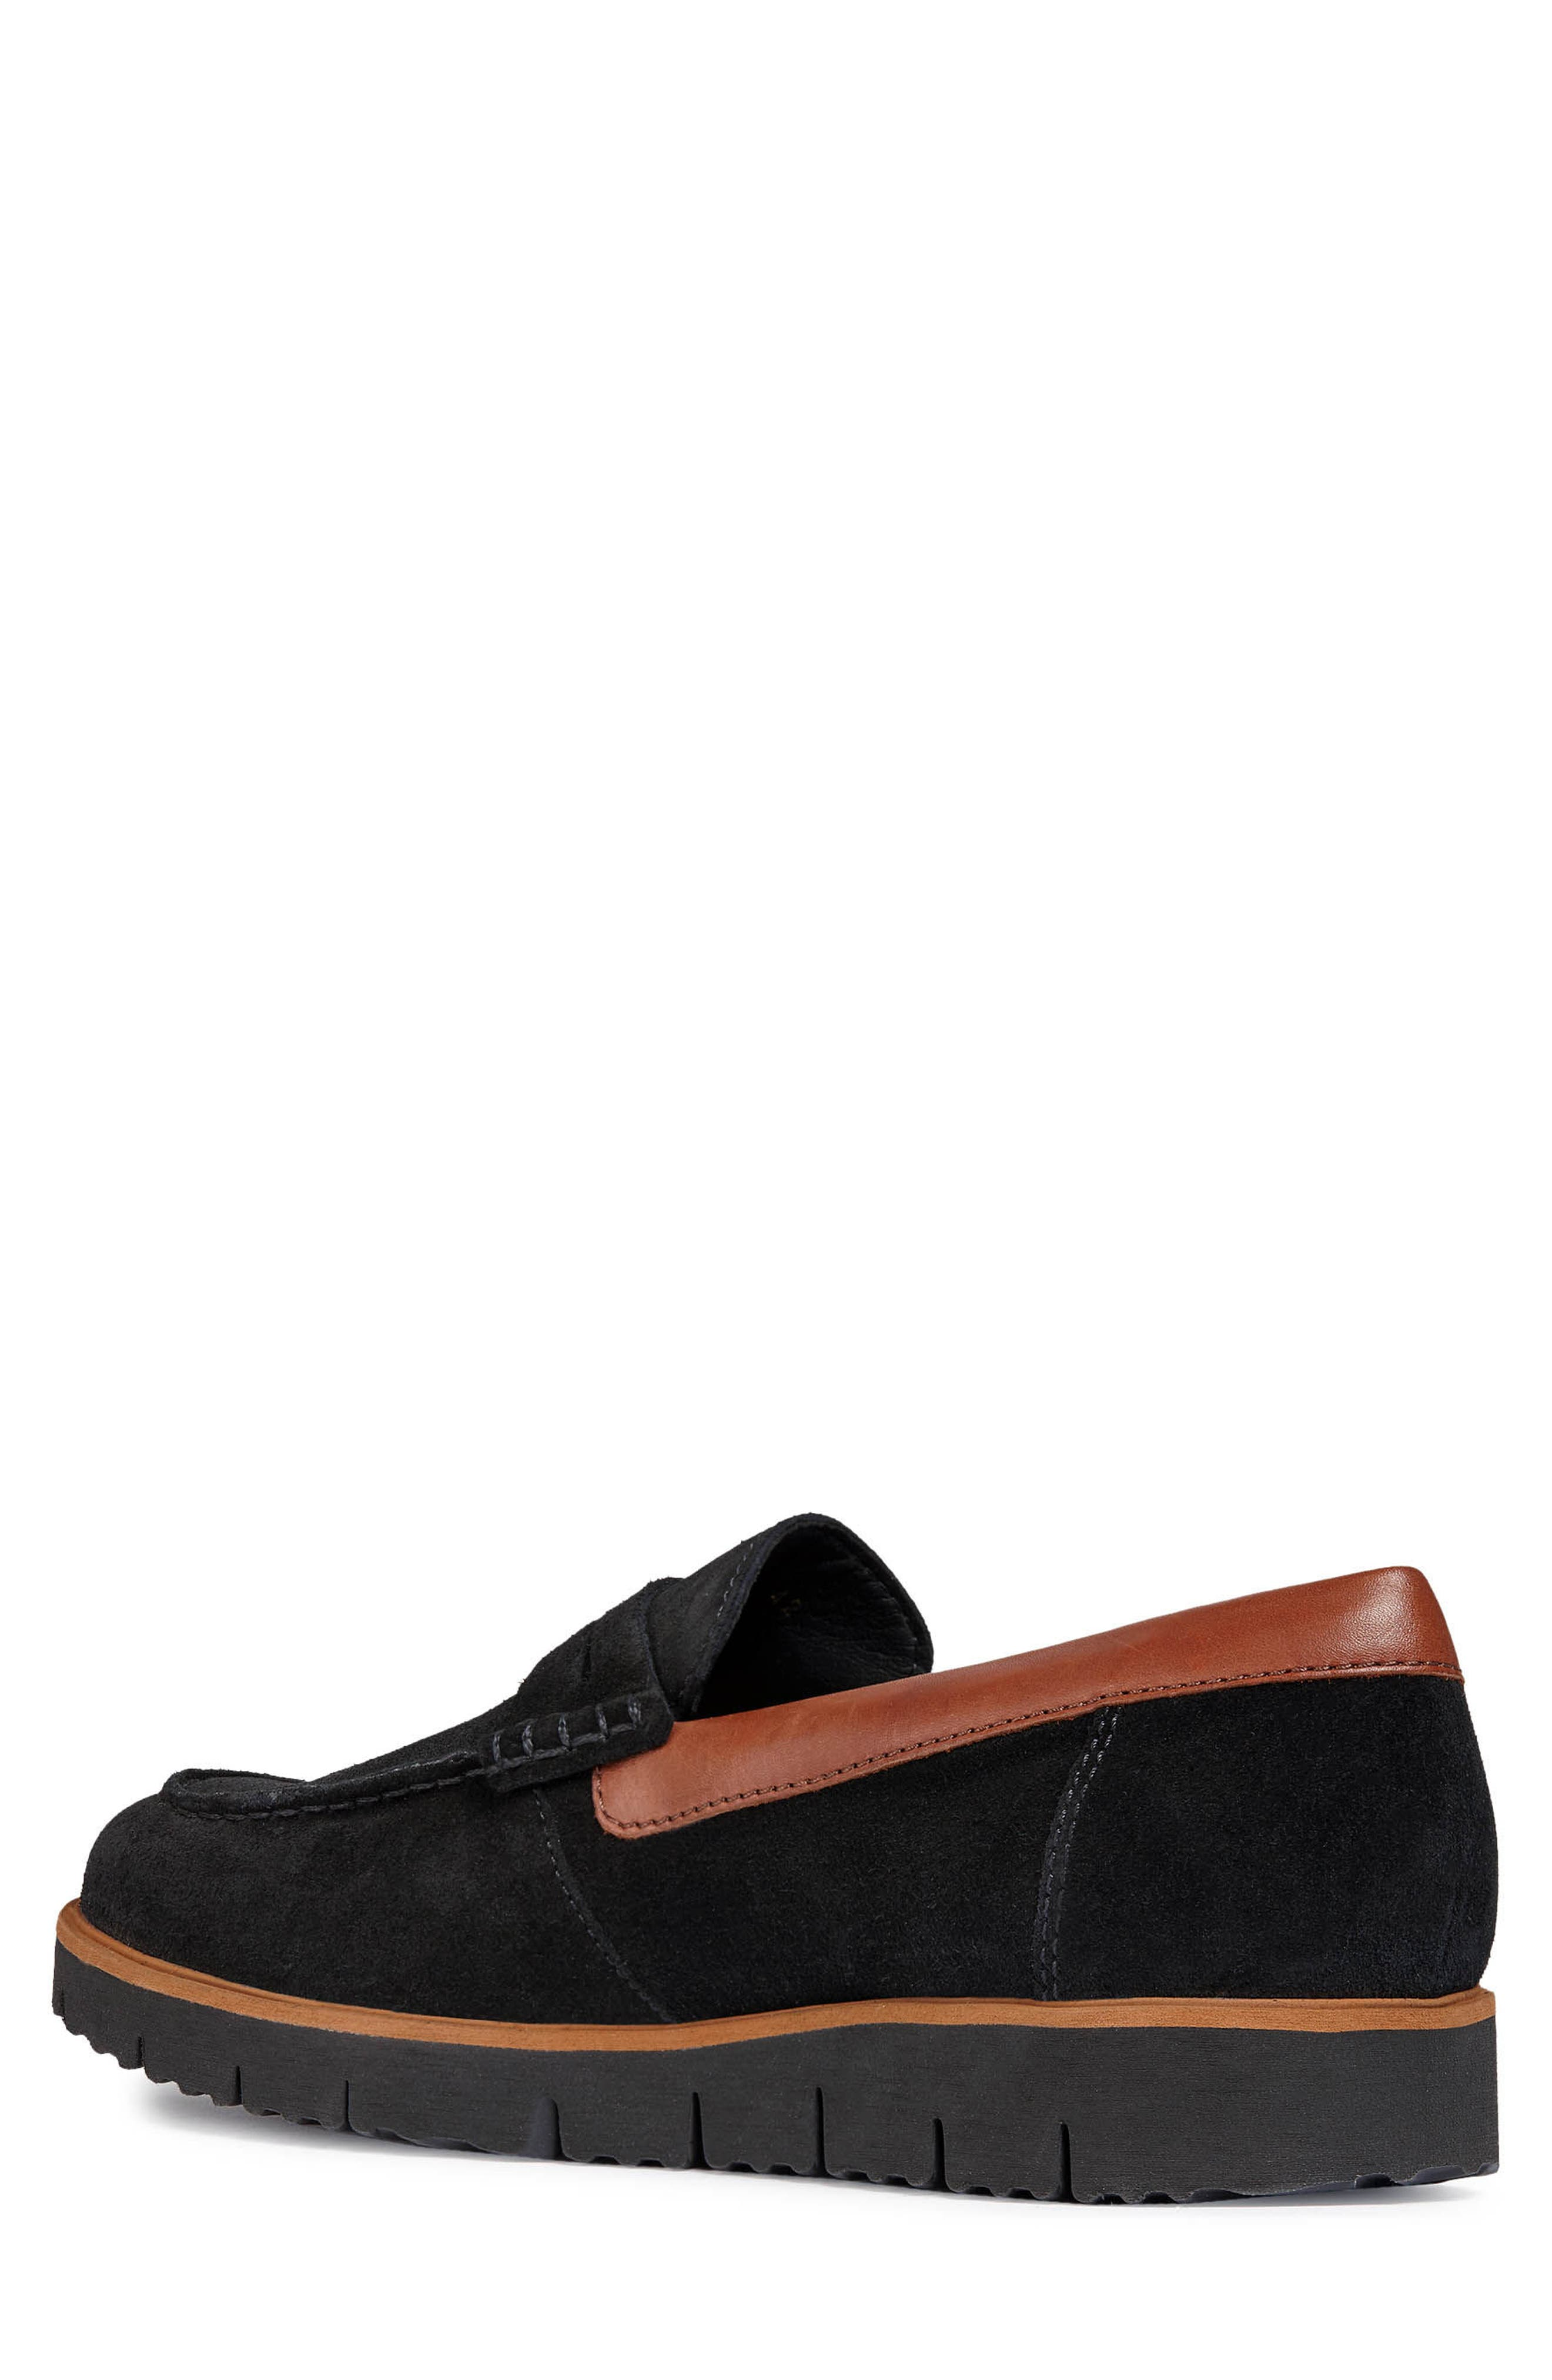 New Pluges 6 Penny Loafer,                             Alternate thumbnail 2, color,                             BLACK/ BROWN LEATHER